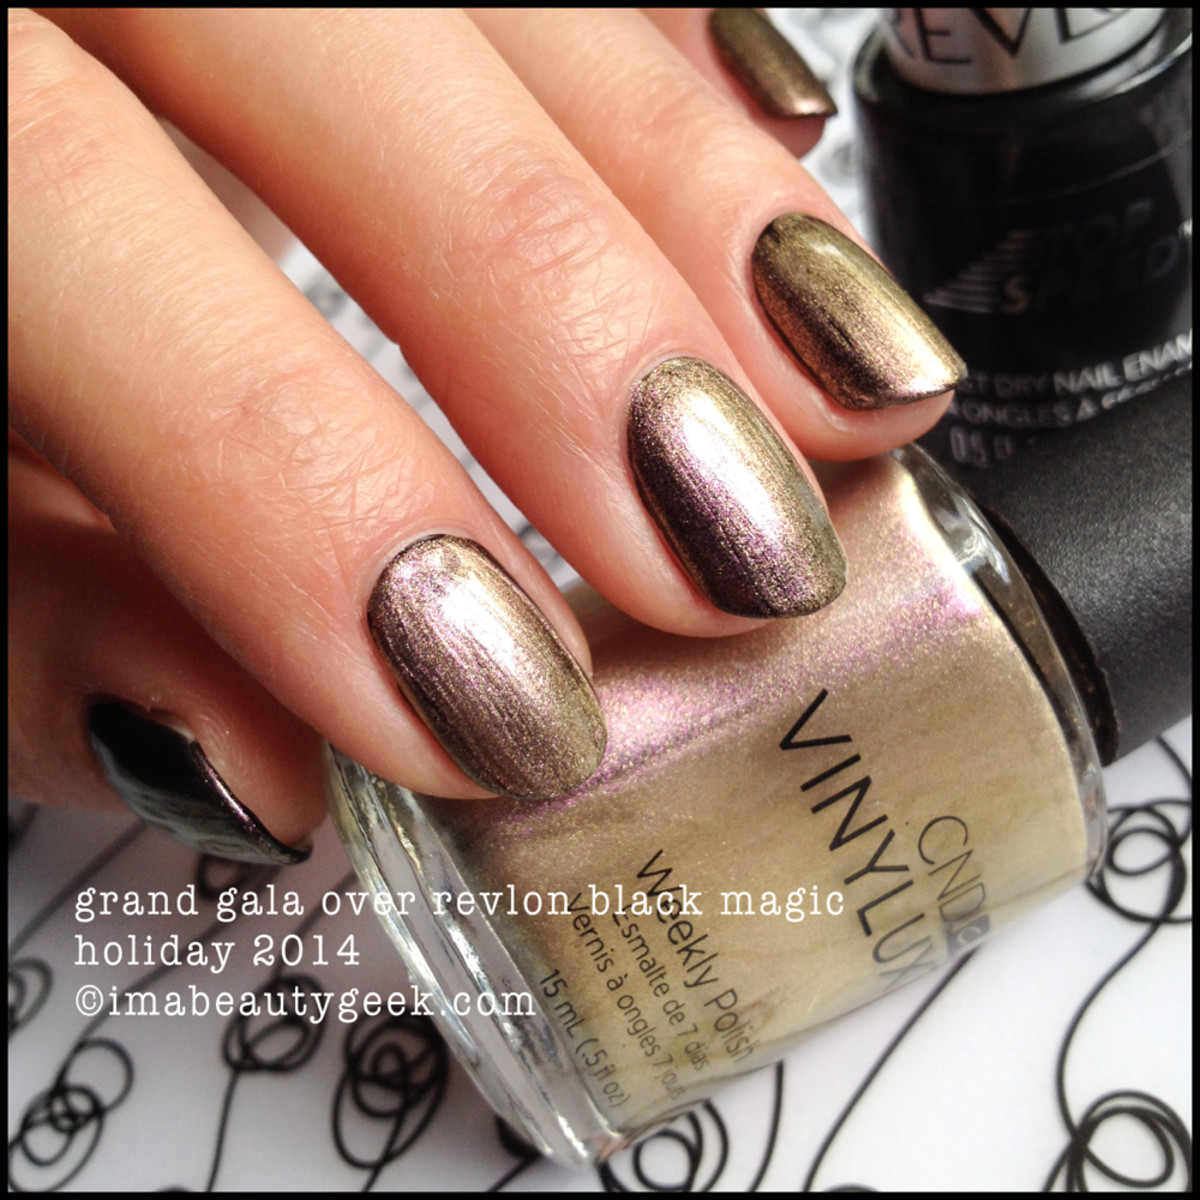 CND Vinylux Holiday 2014 Grand Gala over Black